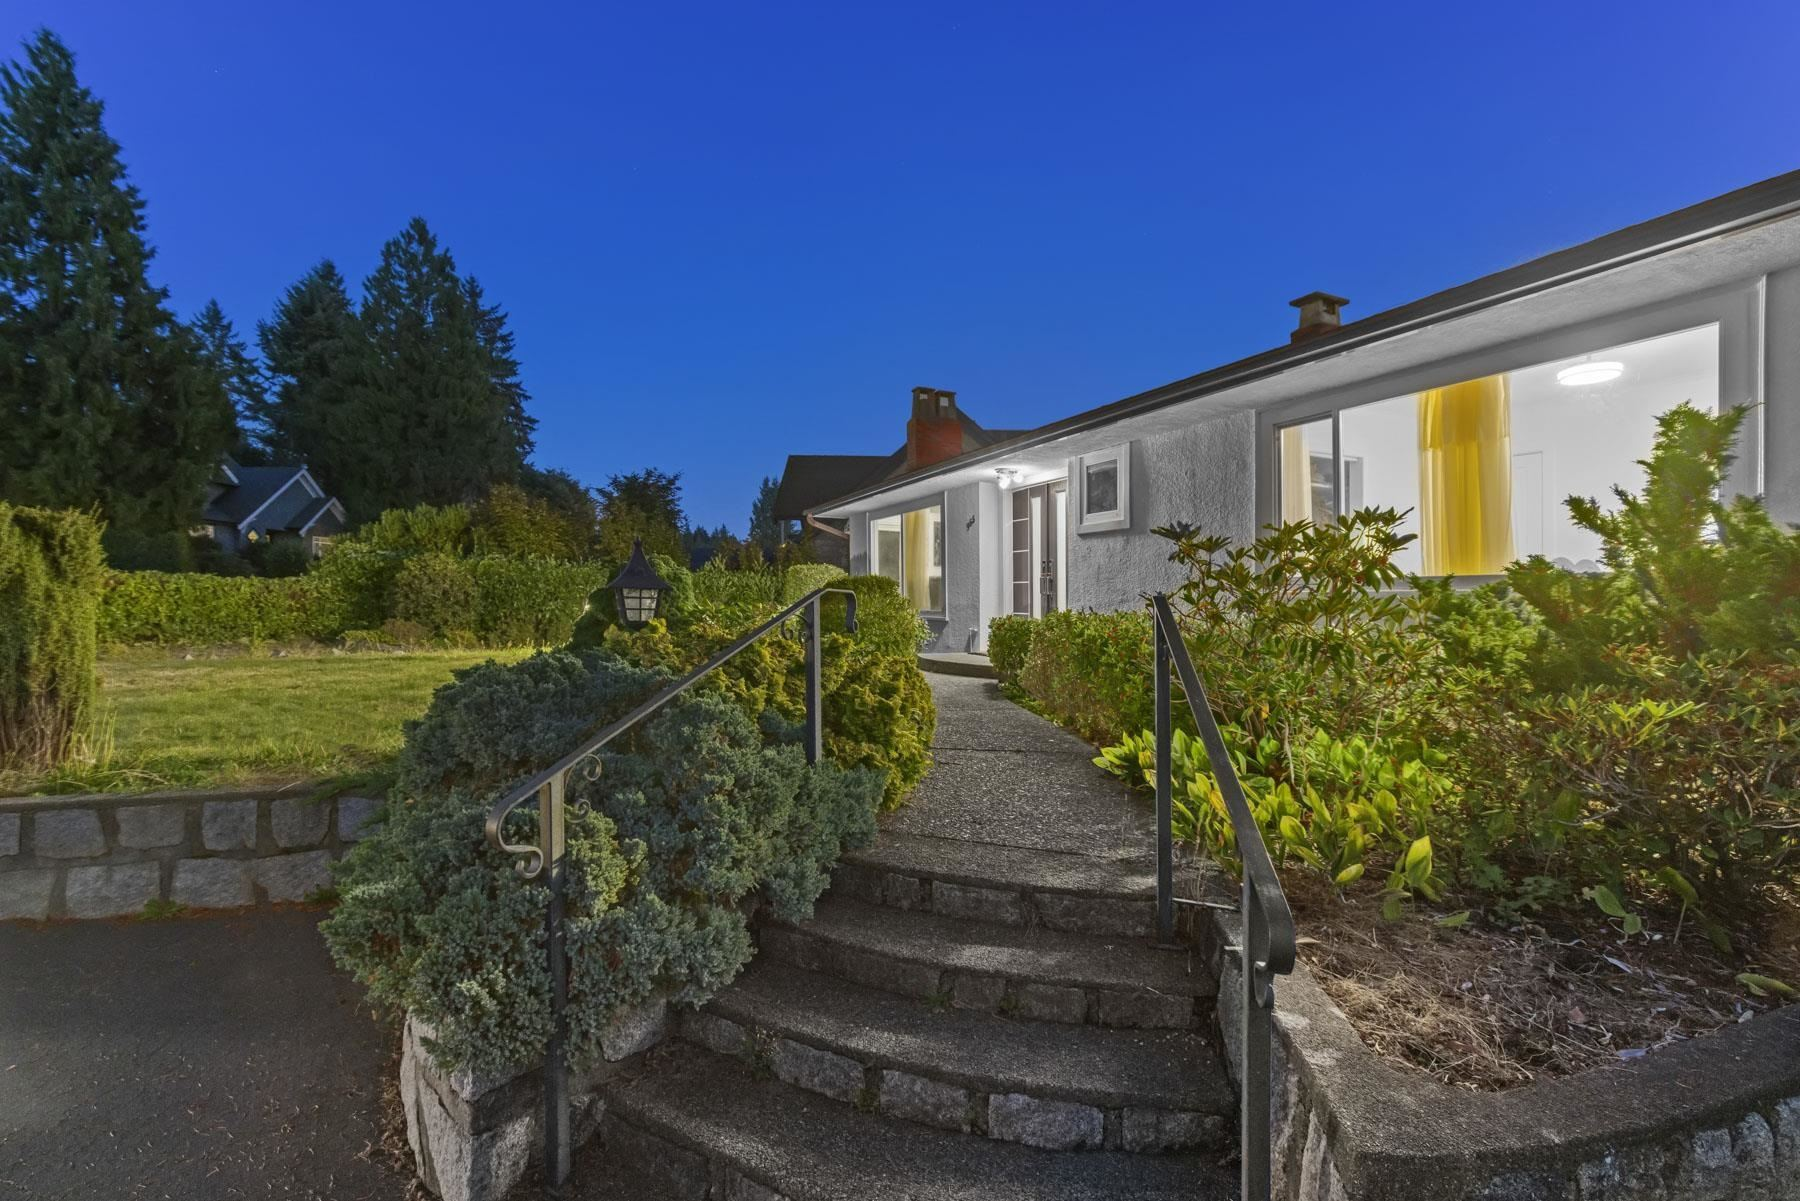 Photo of 965 BEAUMONT DRIVE, North Vancouver, BC V7R 1P7 (MLS # R2619354)